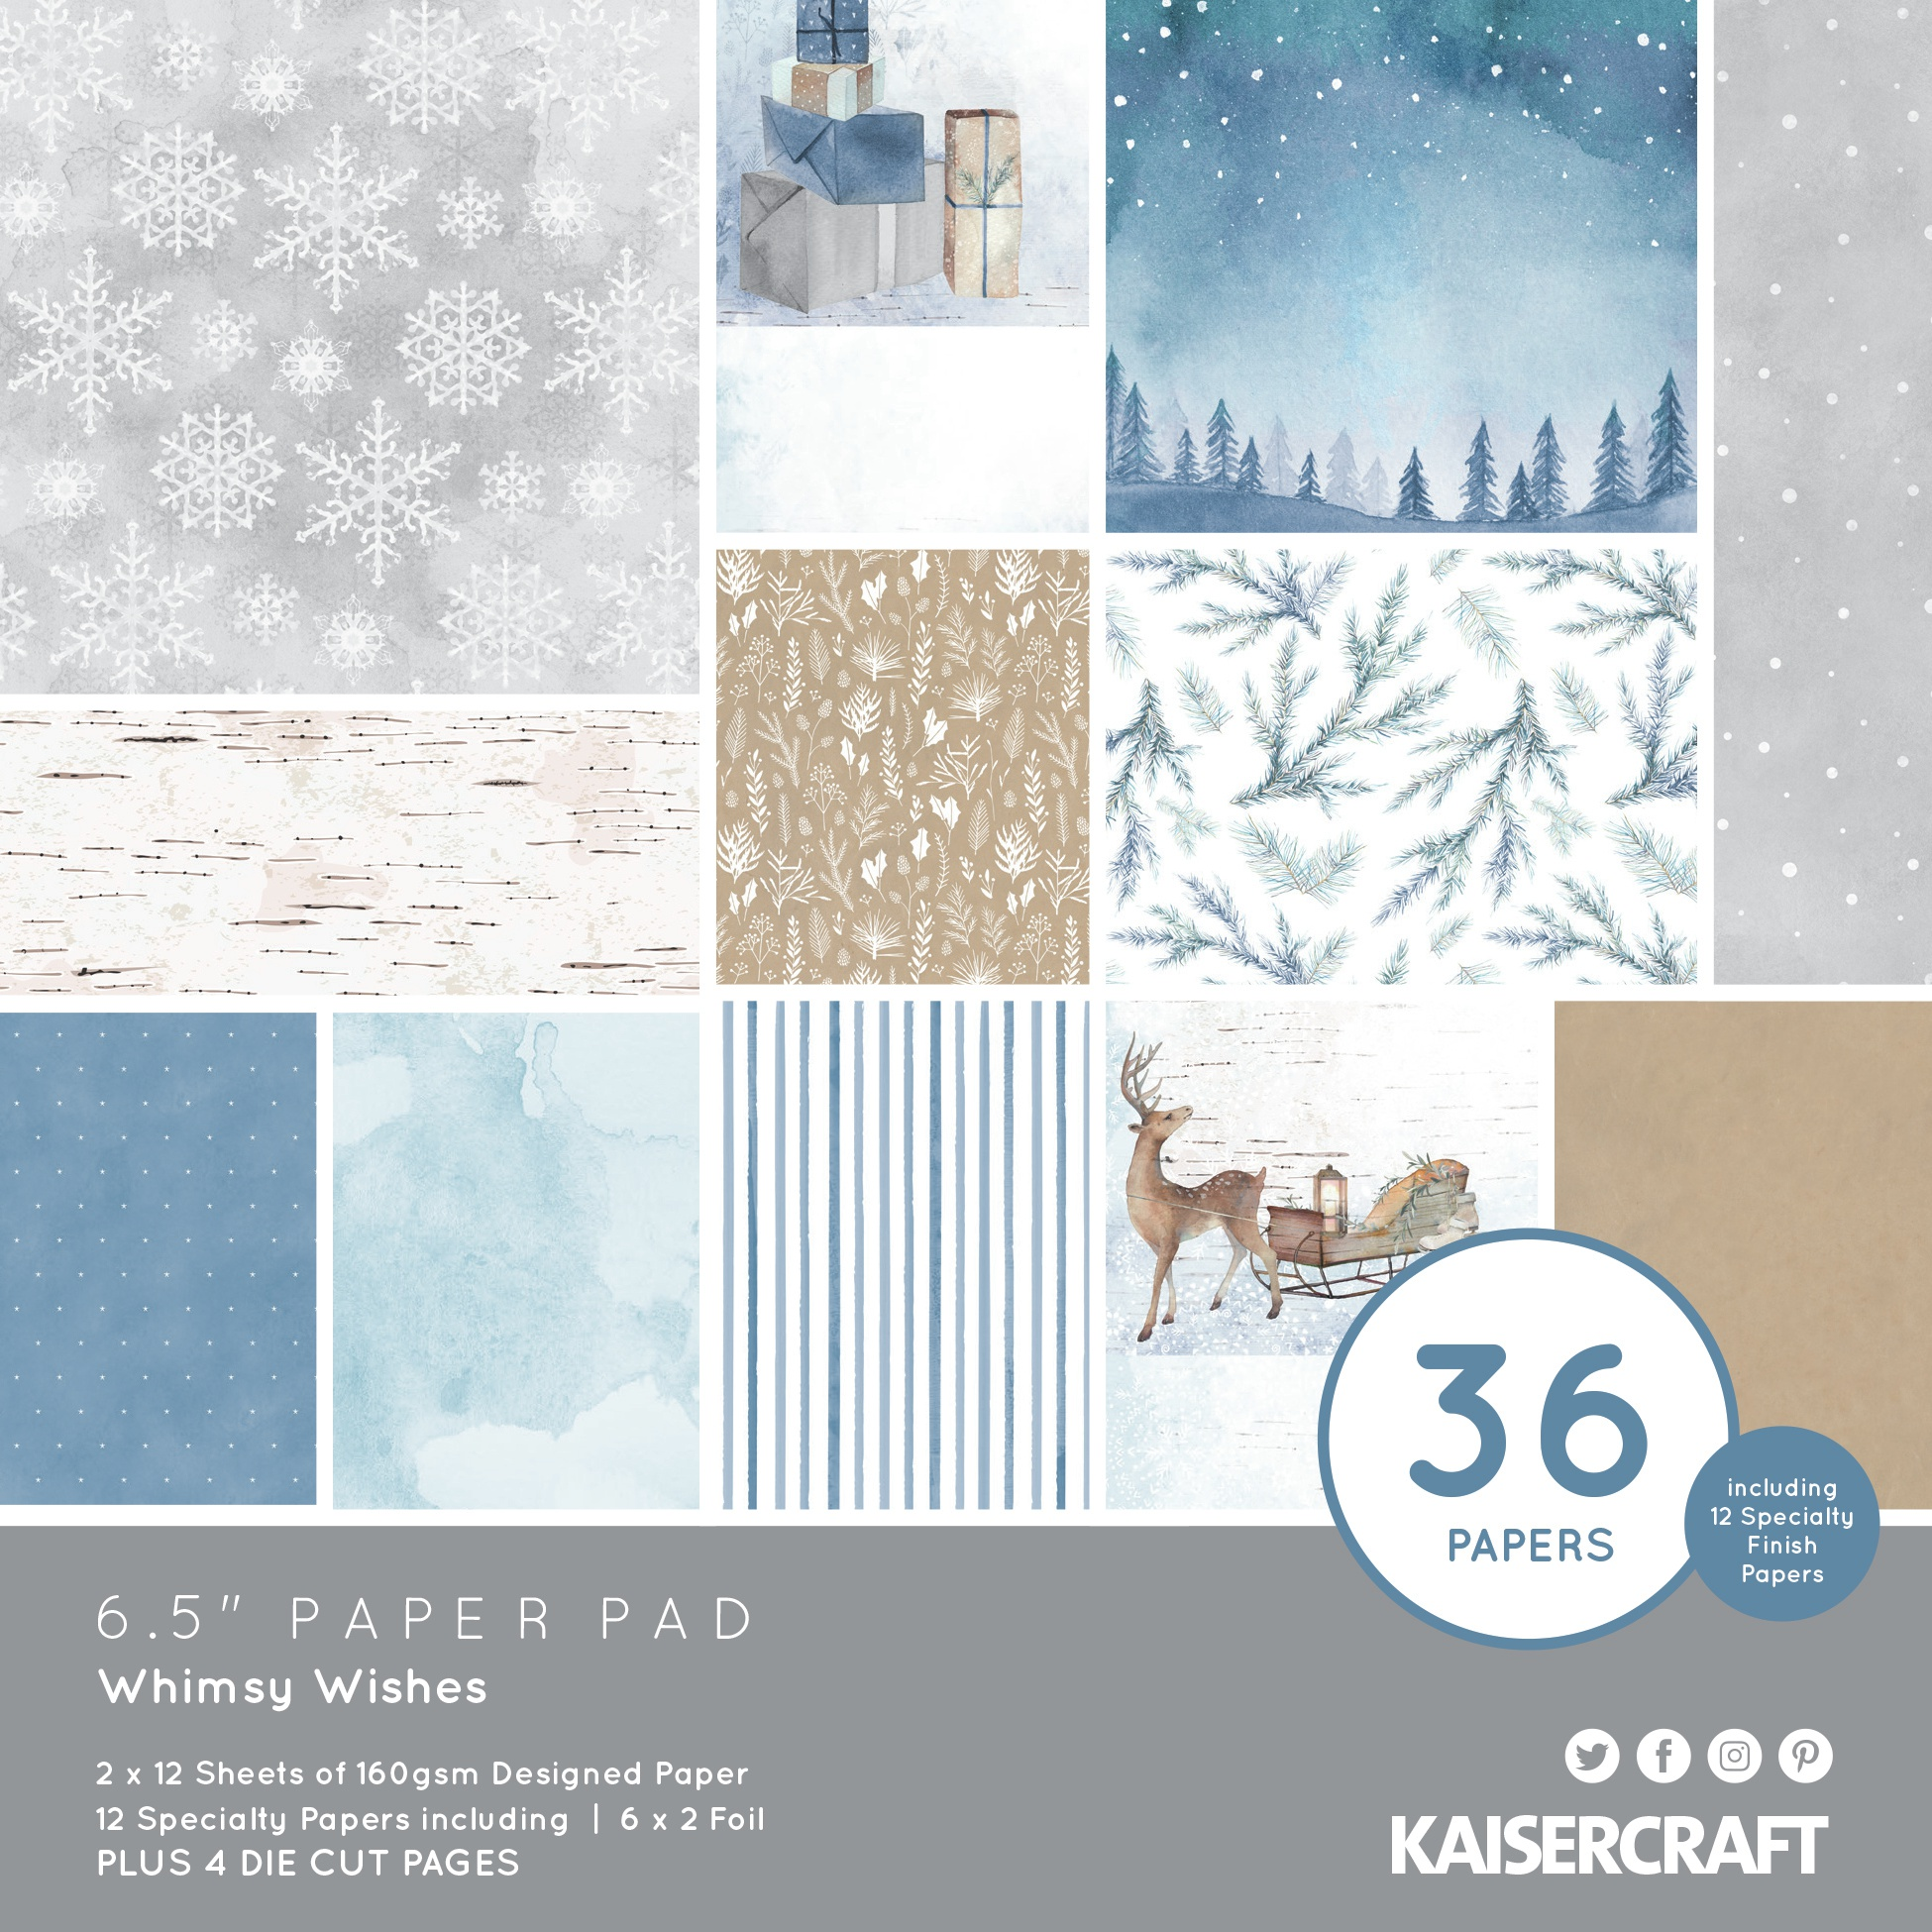 Kaisercraft Paper Pad 6.5X6.5 40/Pkg-Whimsy Wishes